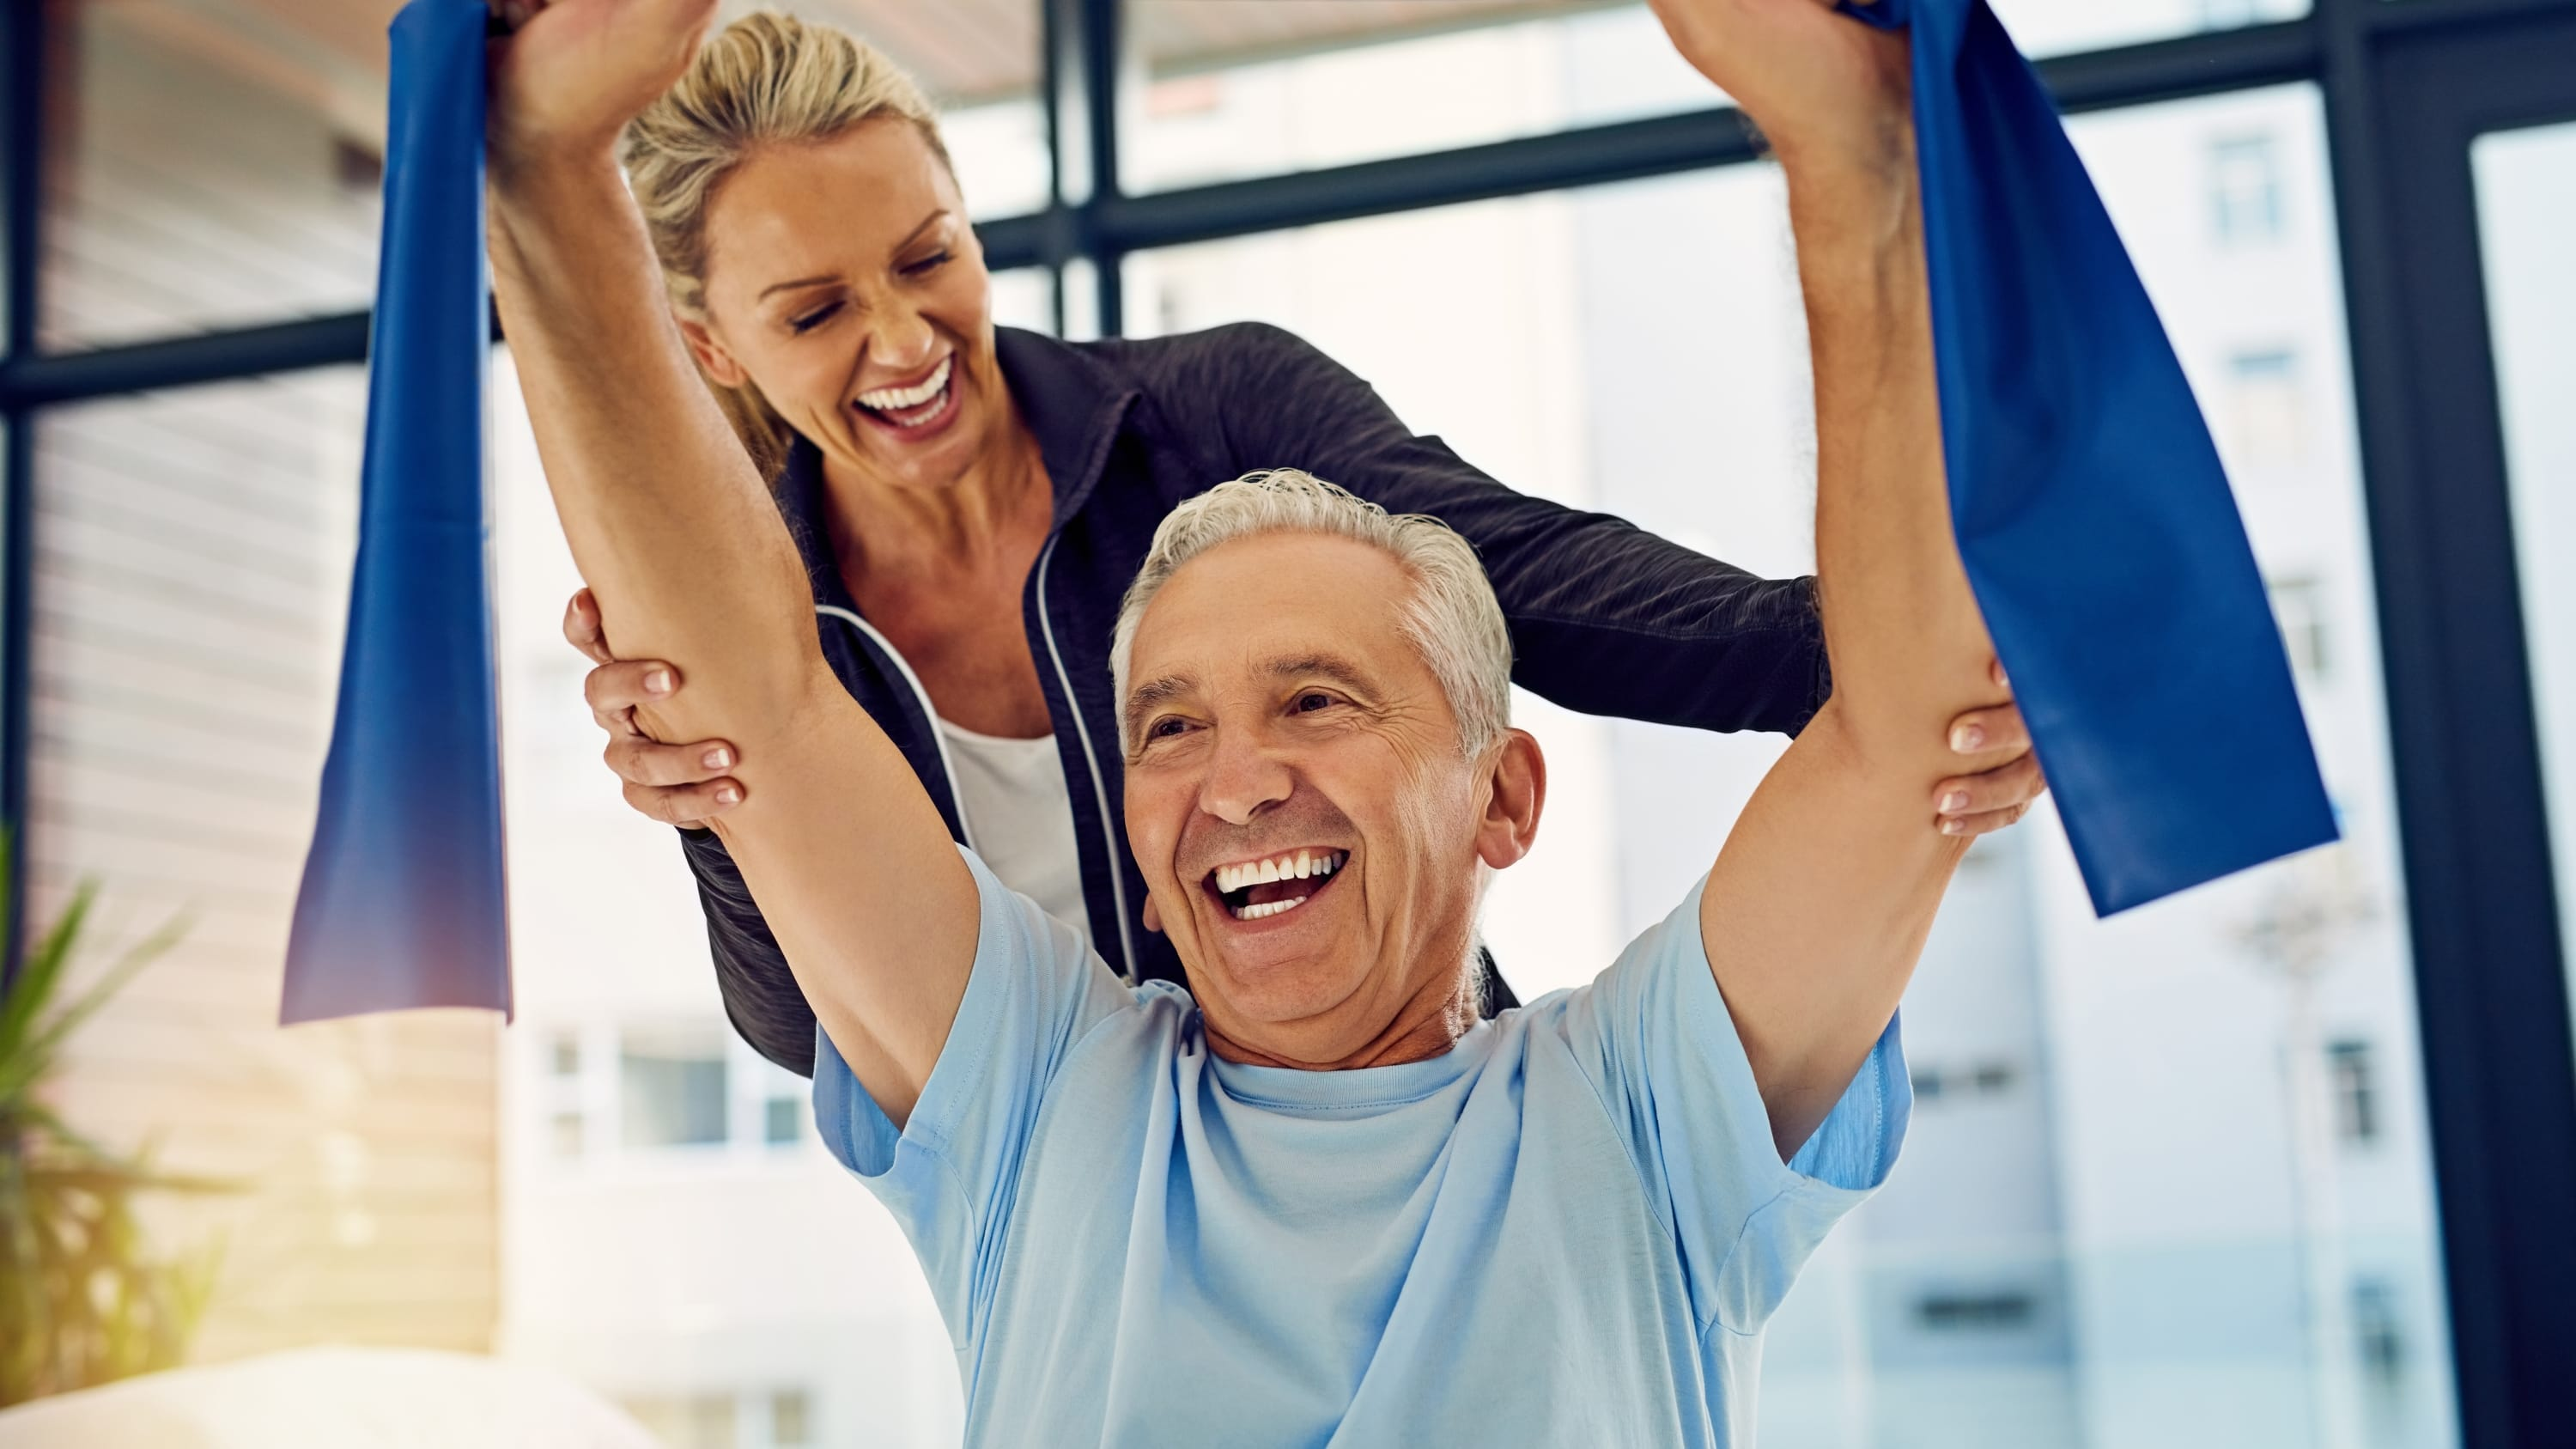 Photograph of a physical therapist helping a senior patient stretch with a stretch band in her office, possibly as part of cancer rehabilitation